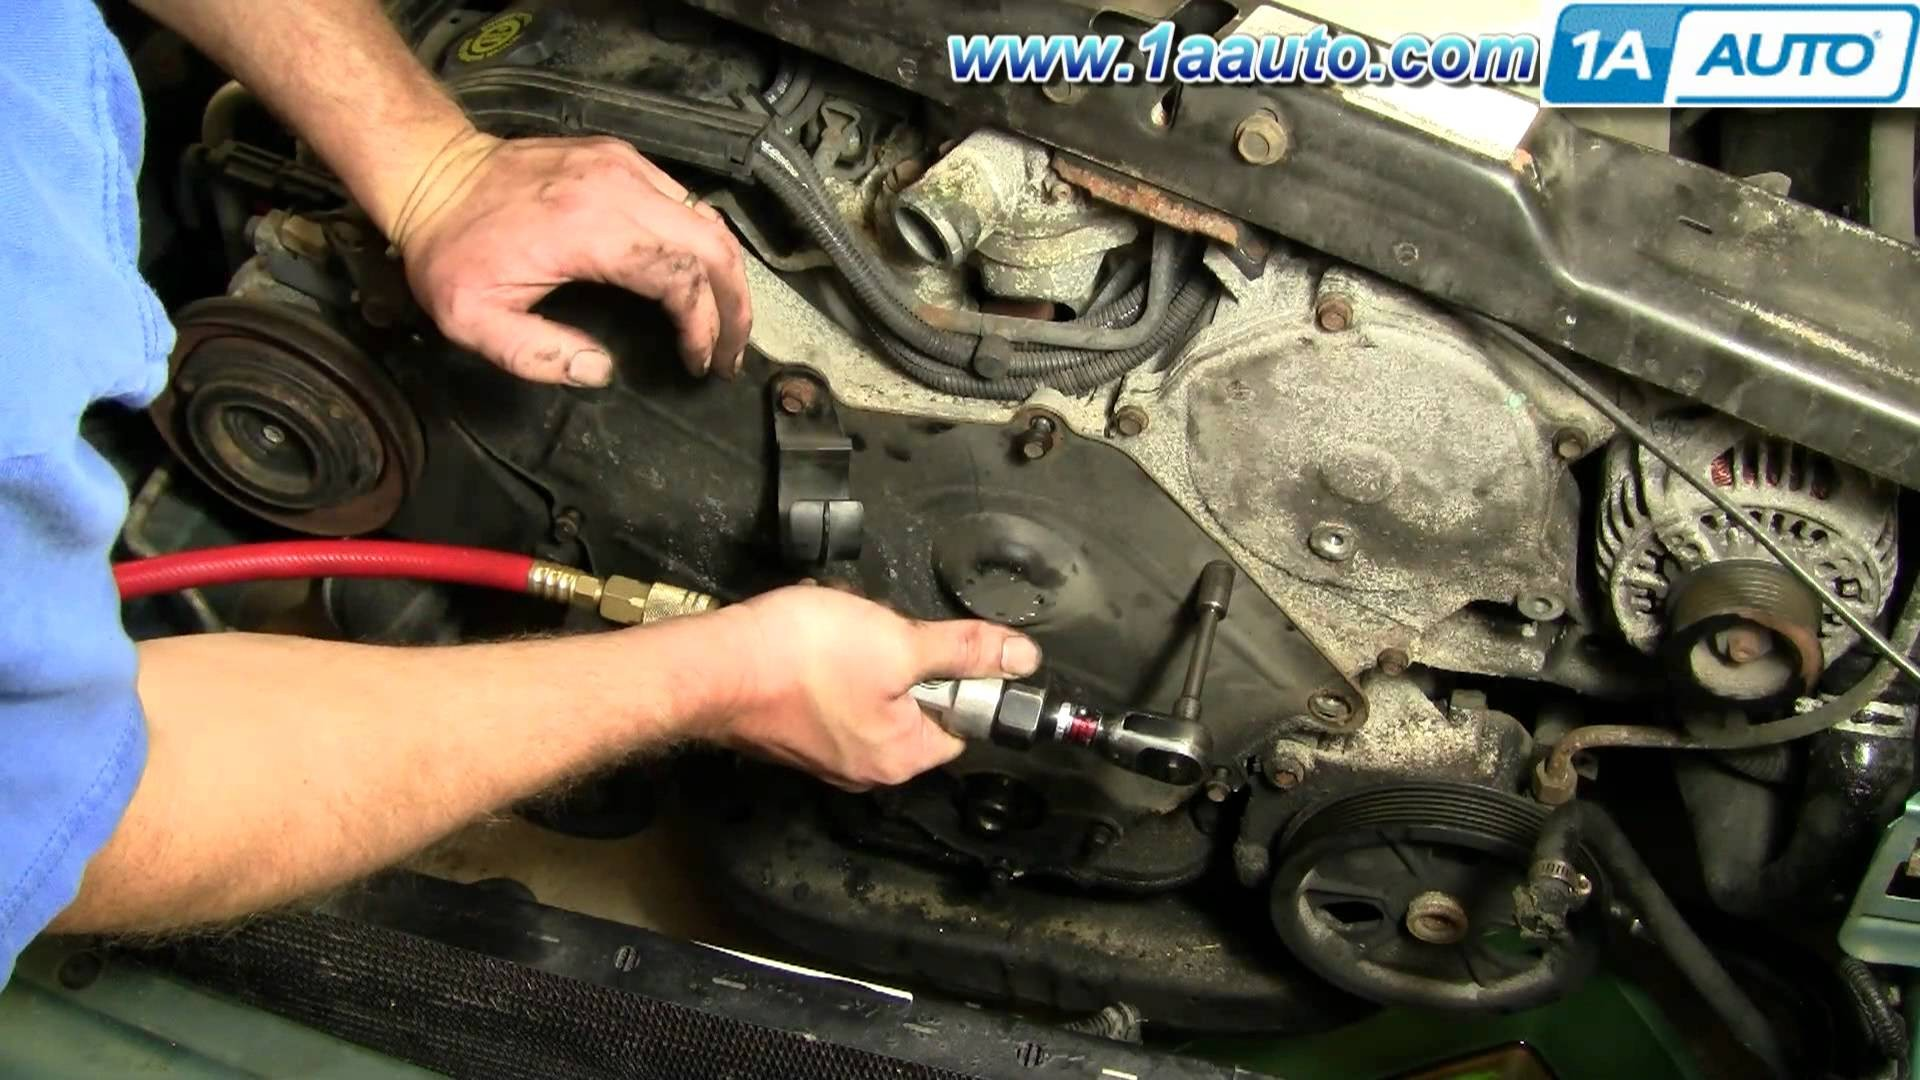 Chrysler 300m Engine Diagram My Wiring 3 5l How To Change Timing Belt Dodge Intrepid 95 97 Part 2 1aauto